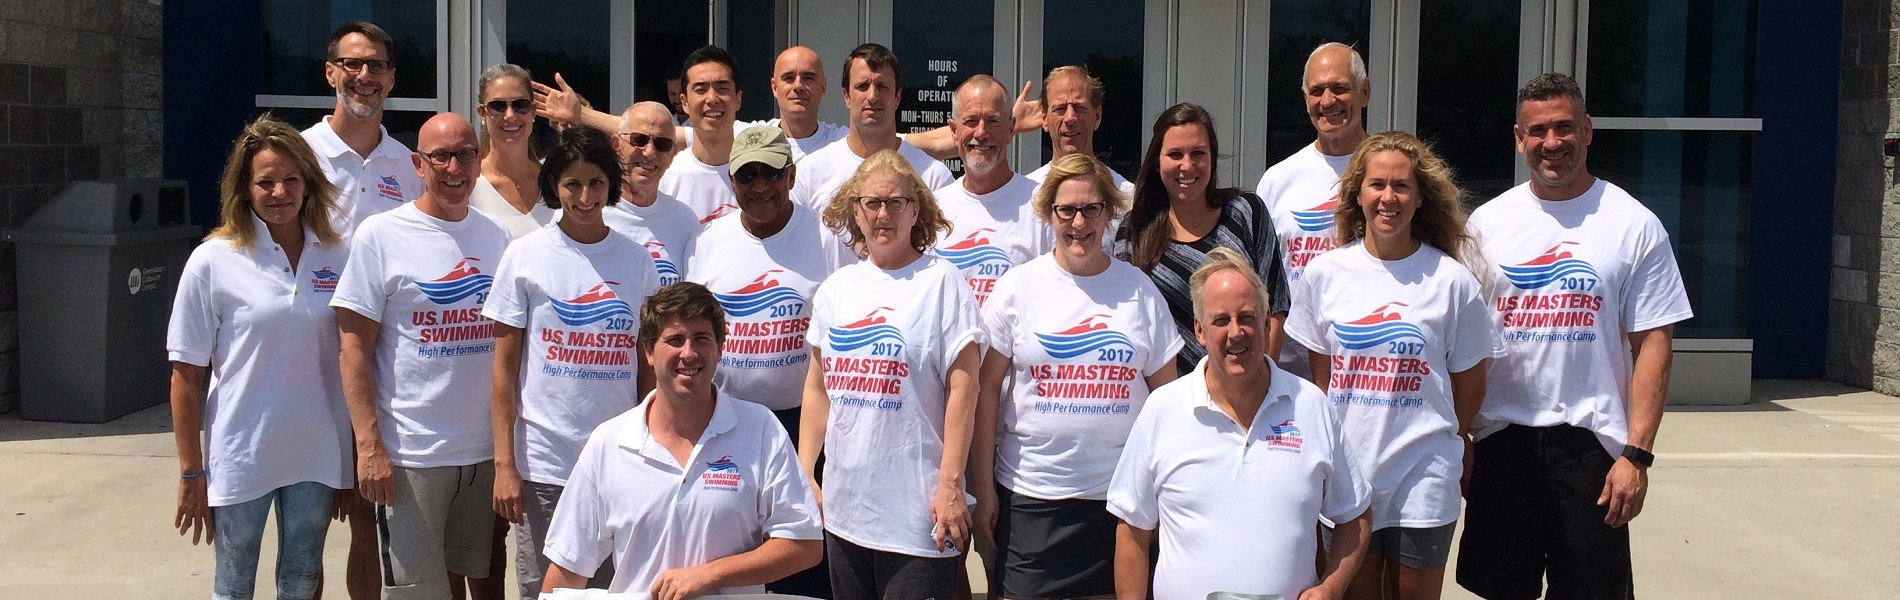 U.S. Masters Swimming High Performance Camp